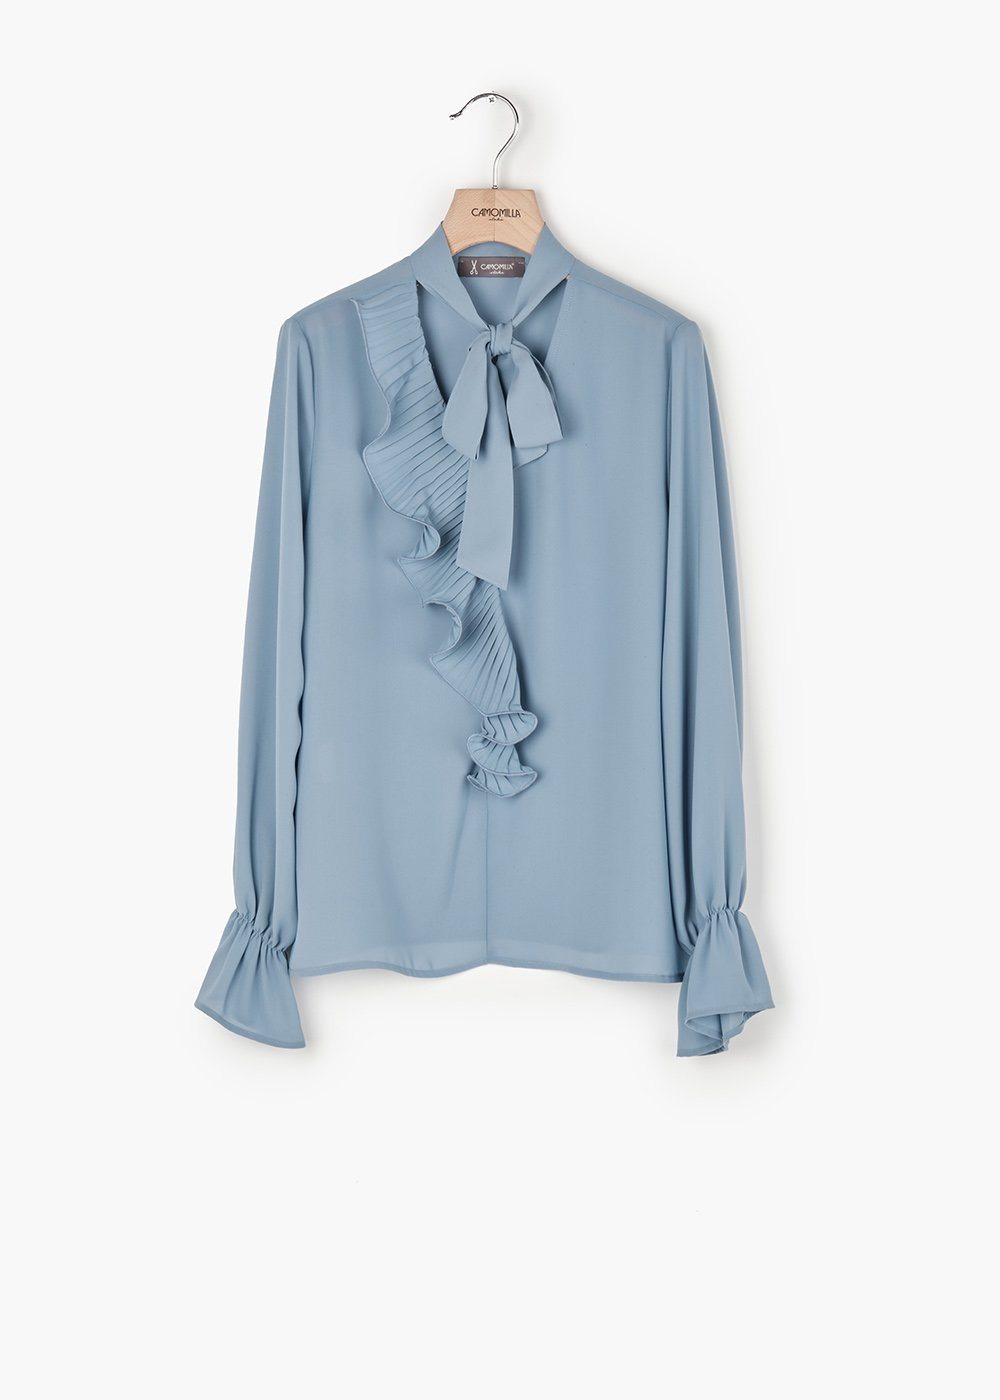 Cyprien georgette shirt with V-neck - Materia - Woman